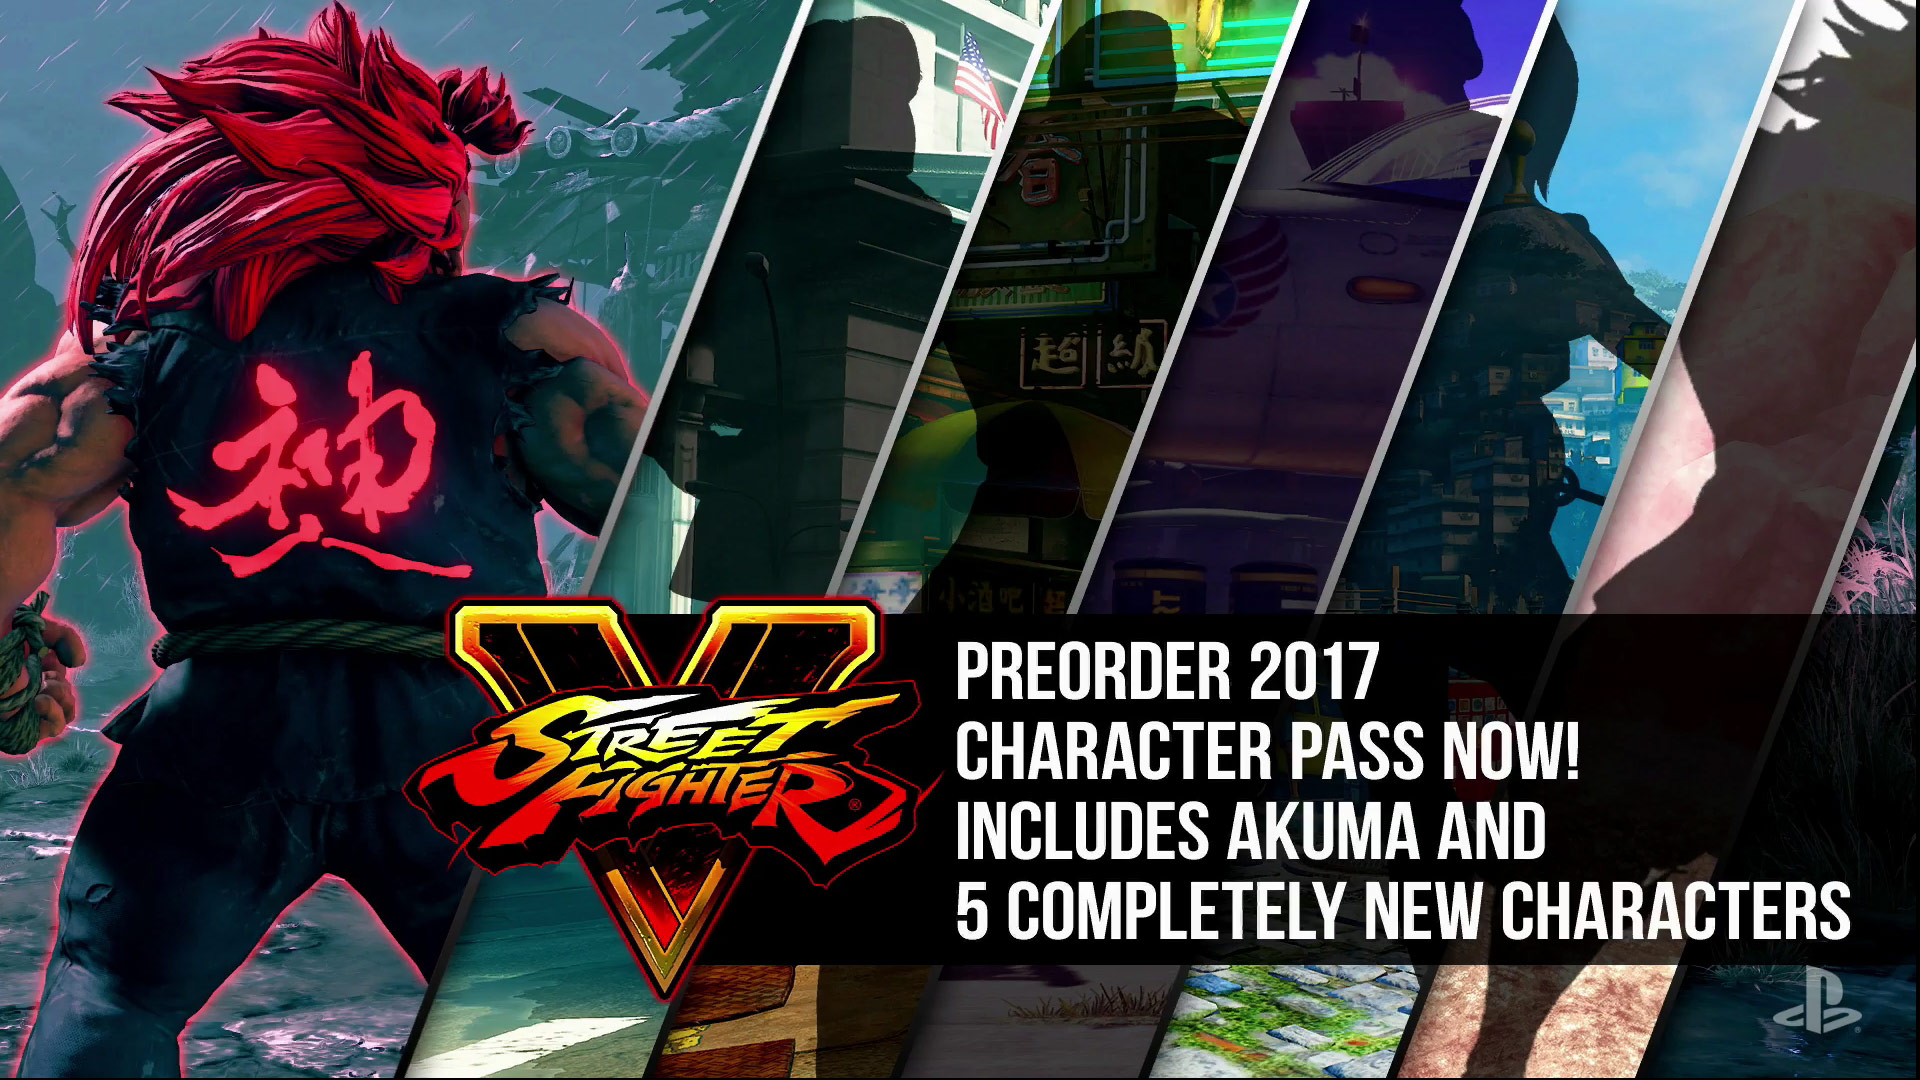 Street Fighter 5 Akuma Gallery 1 out of 2 image gallery